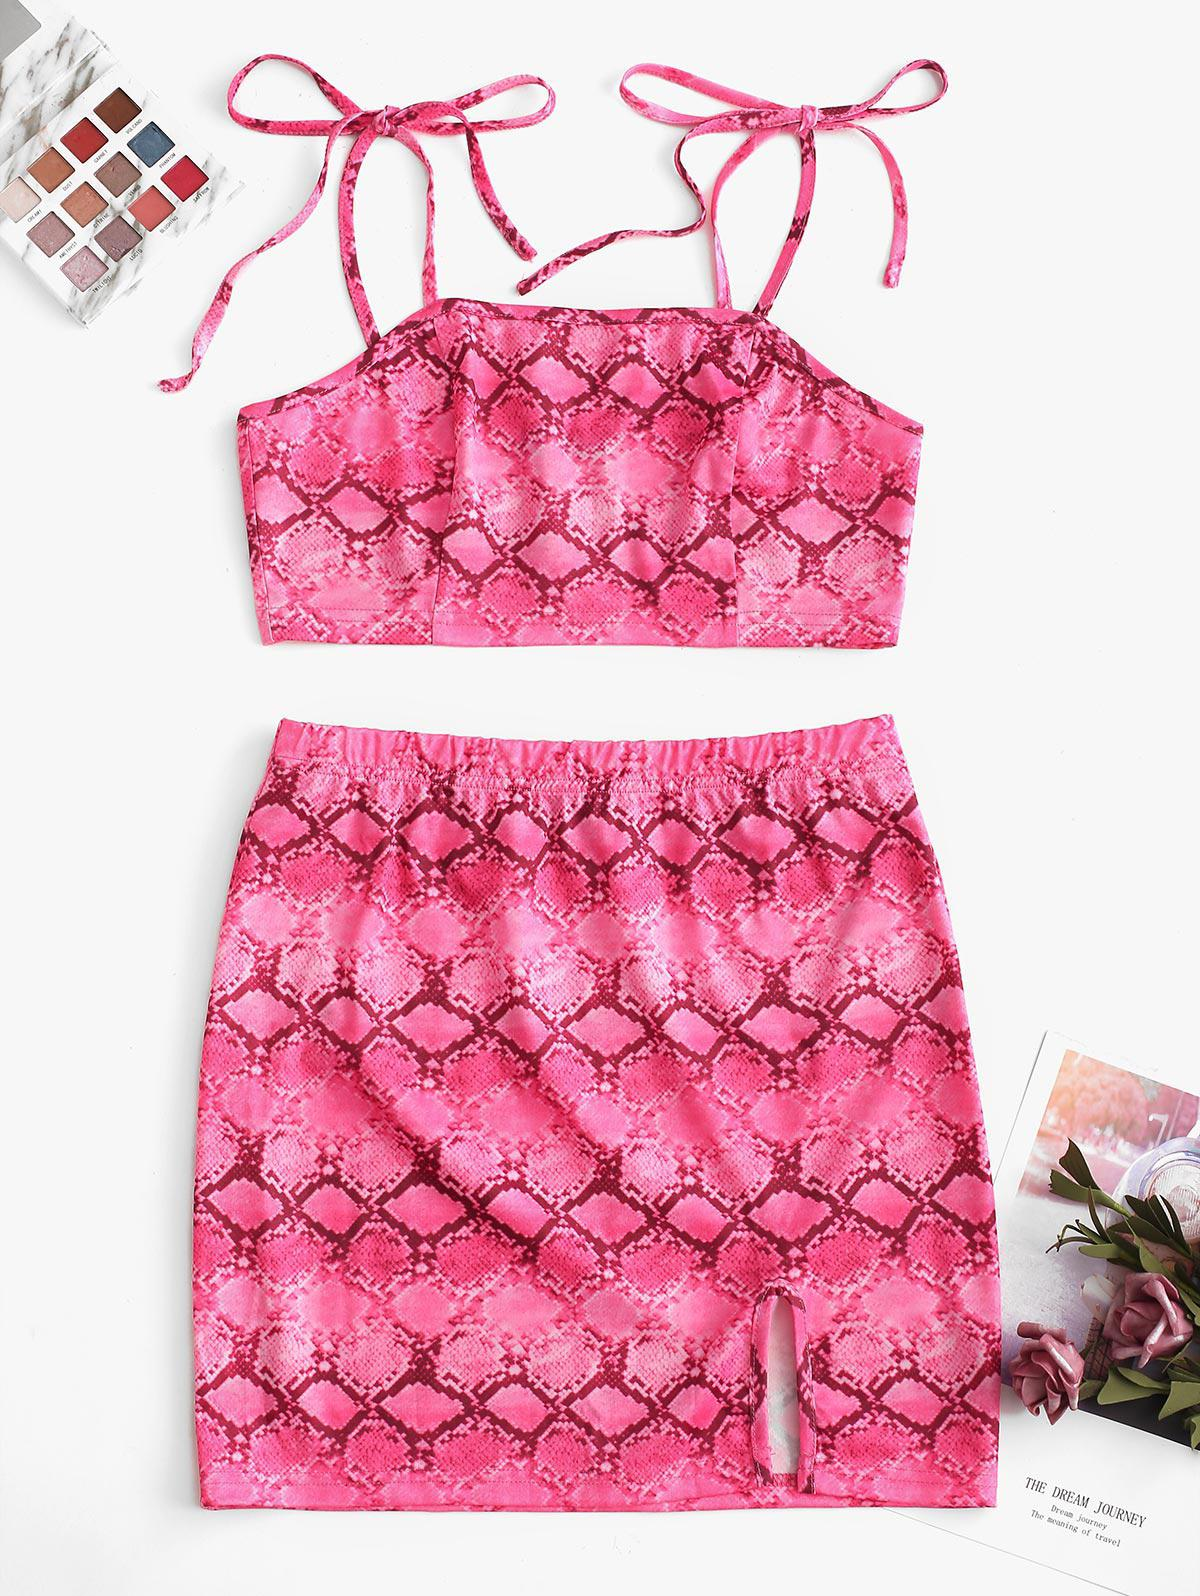 ZAFUL Snakeskin Print Cropped Top And High Waist Skirt Set фото